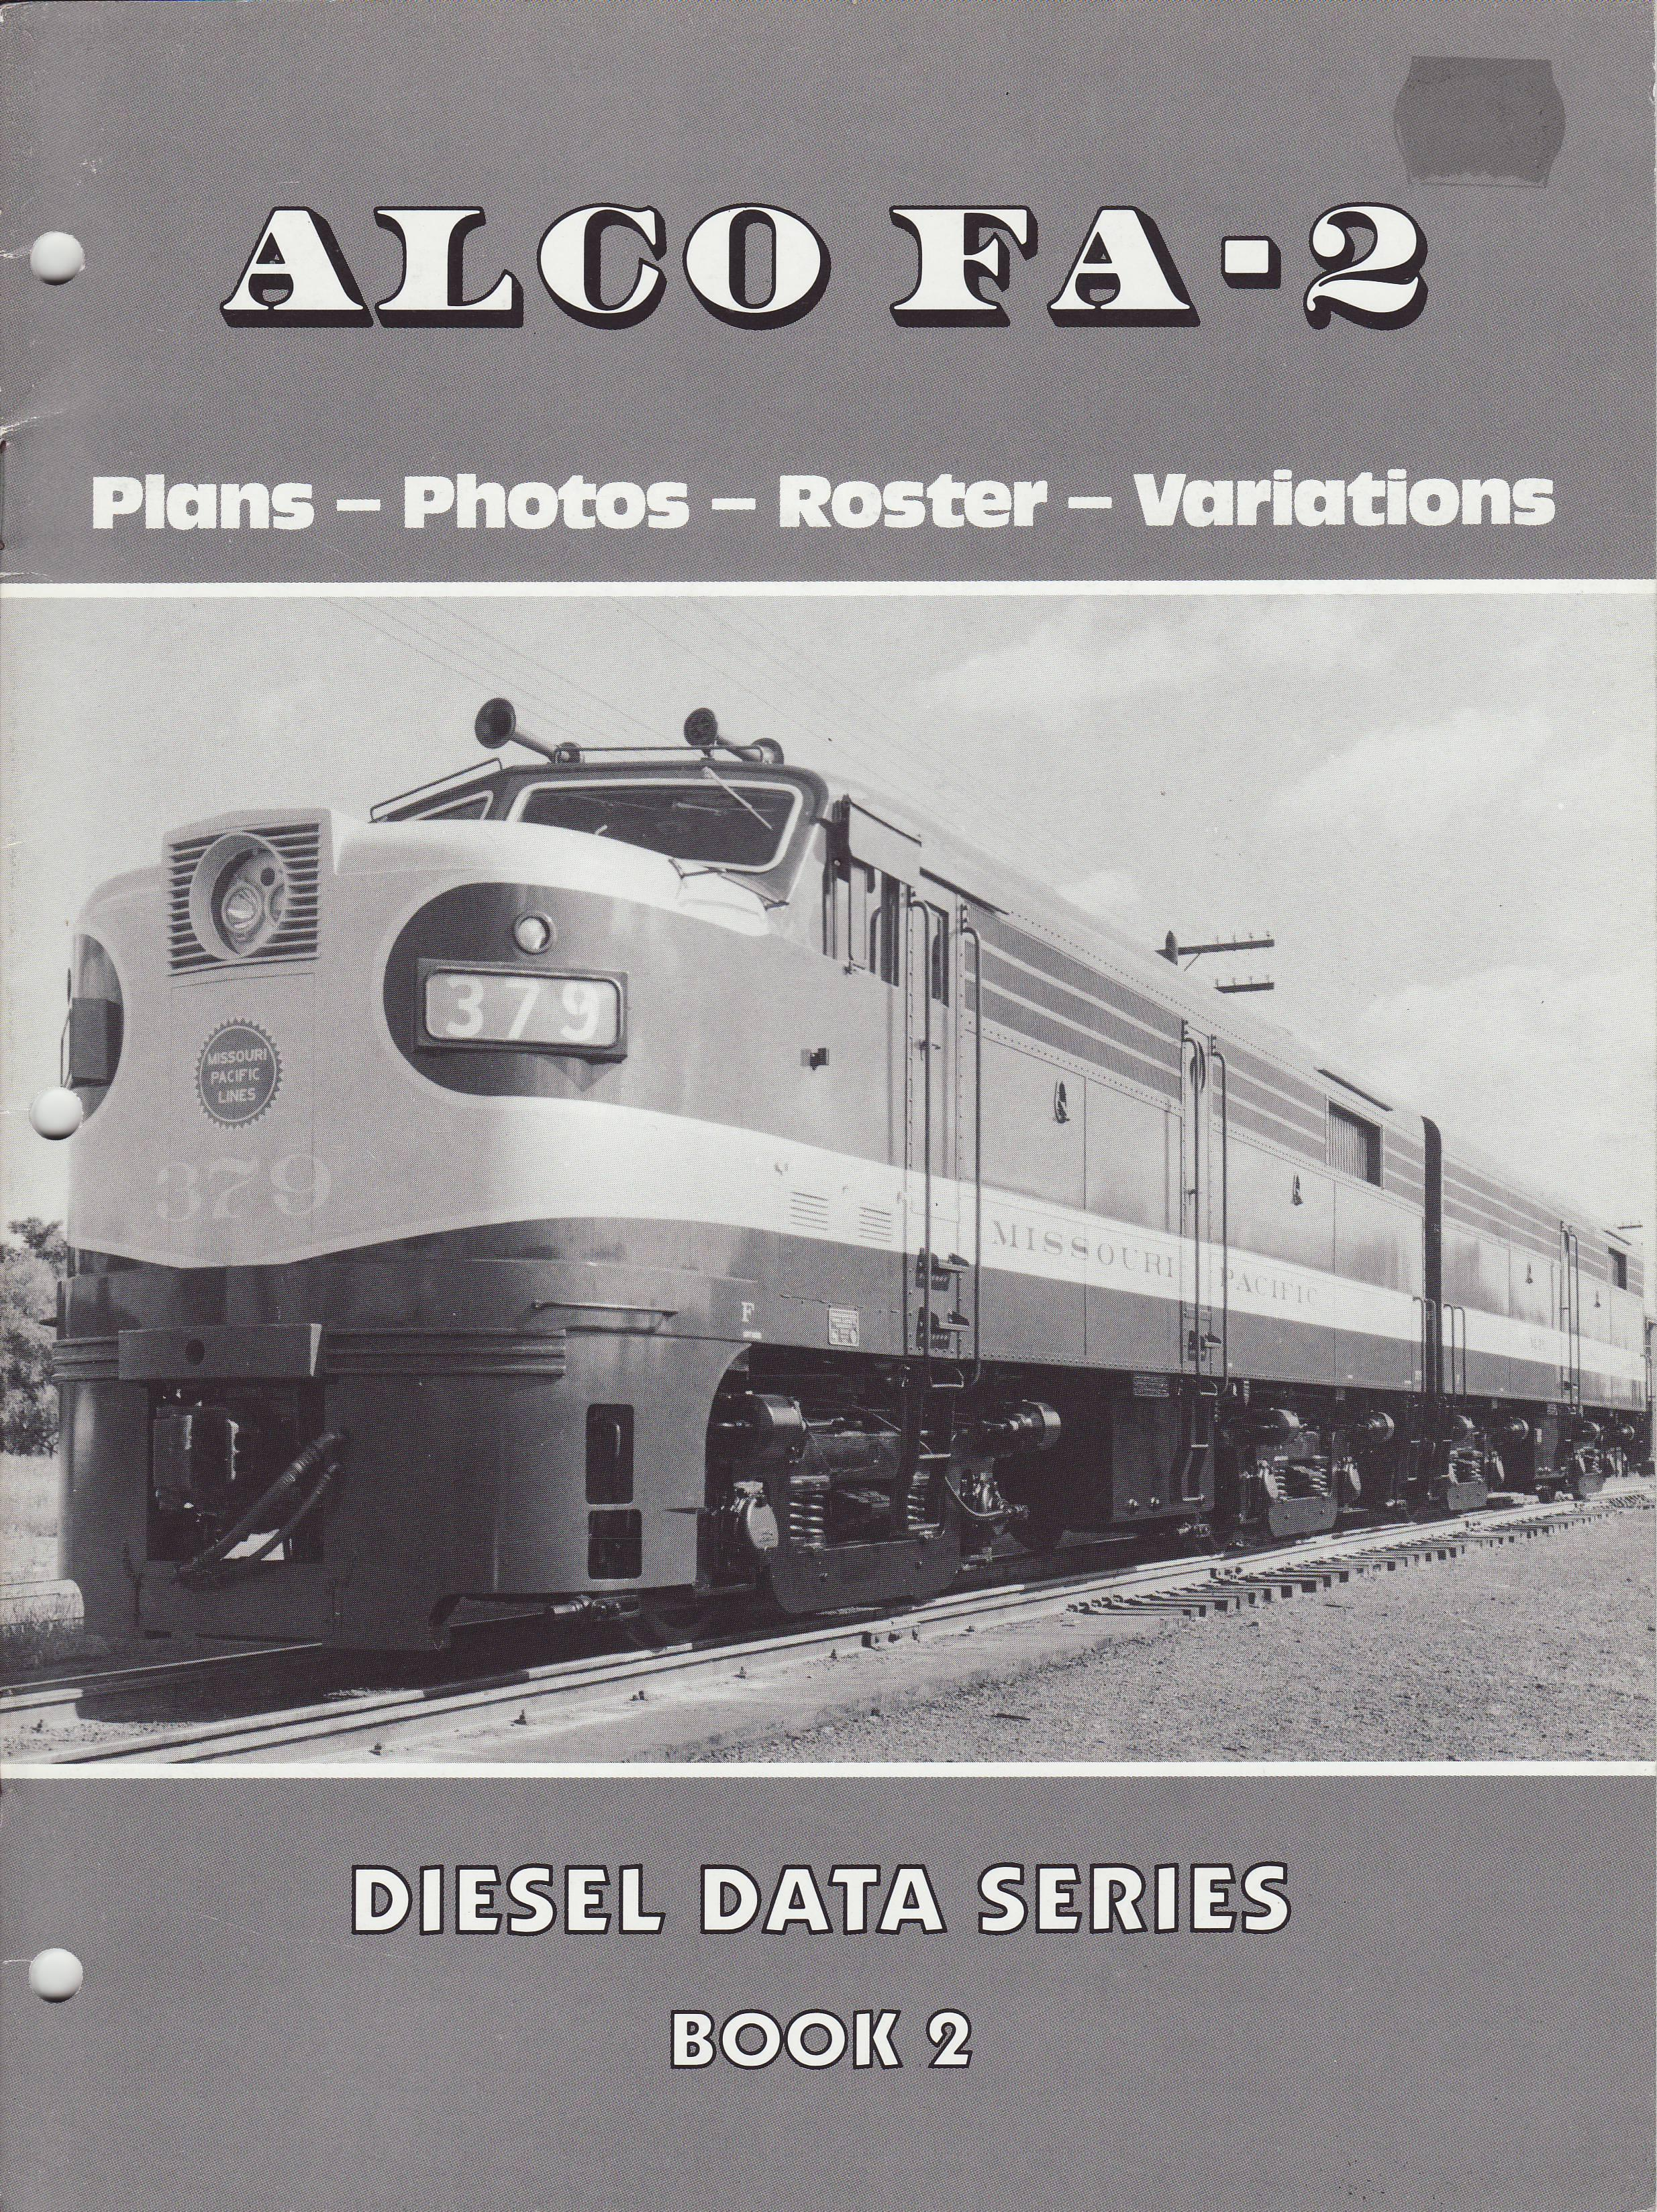 Alco Fa 2 Diesel Data Series Book 2 Plans Photos Roster